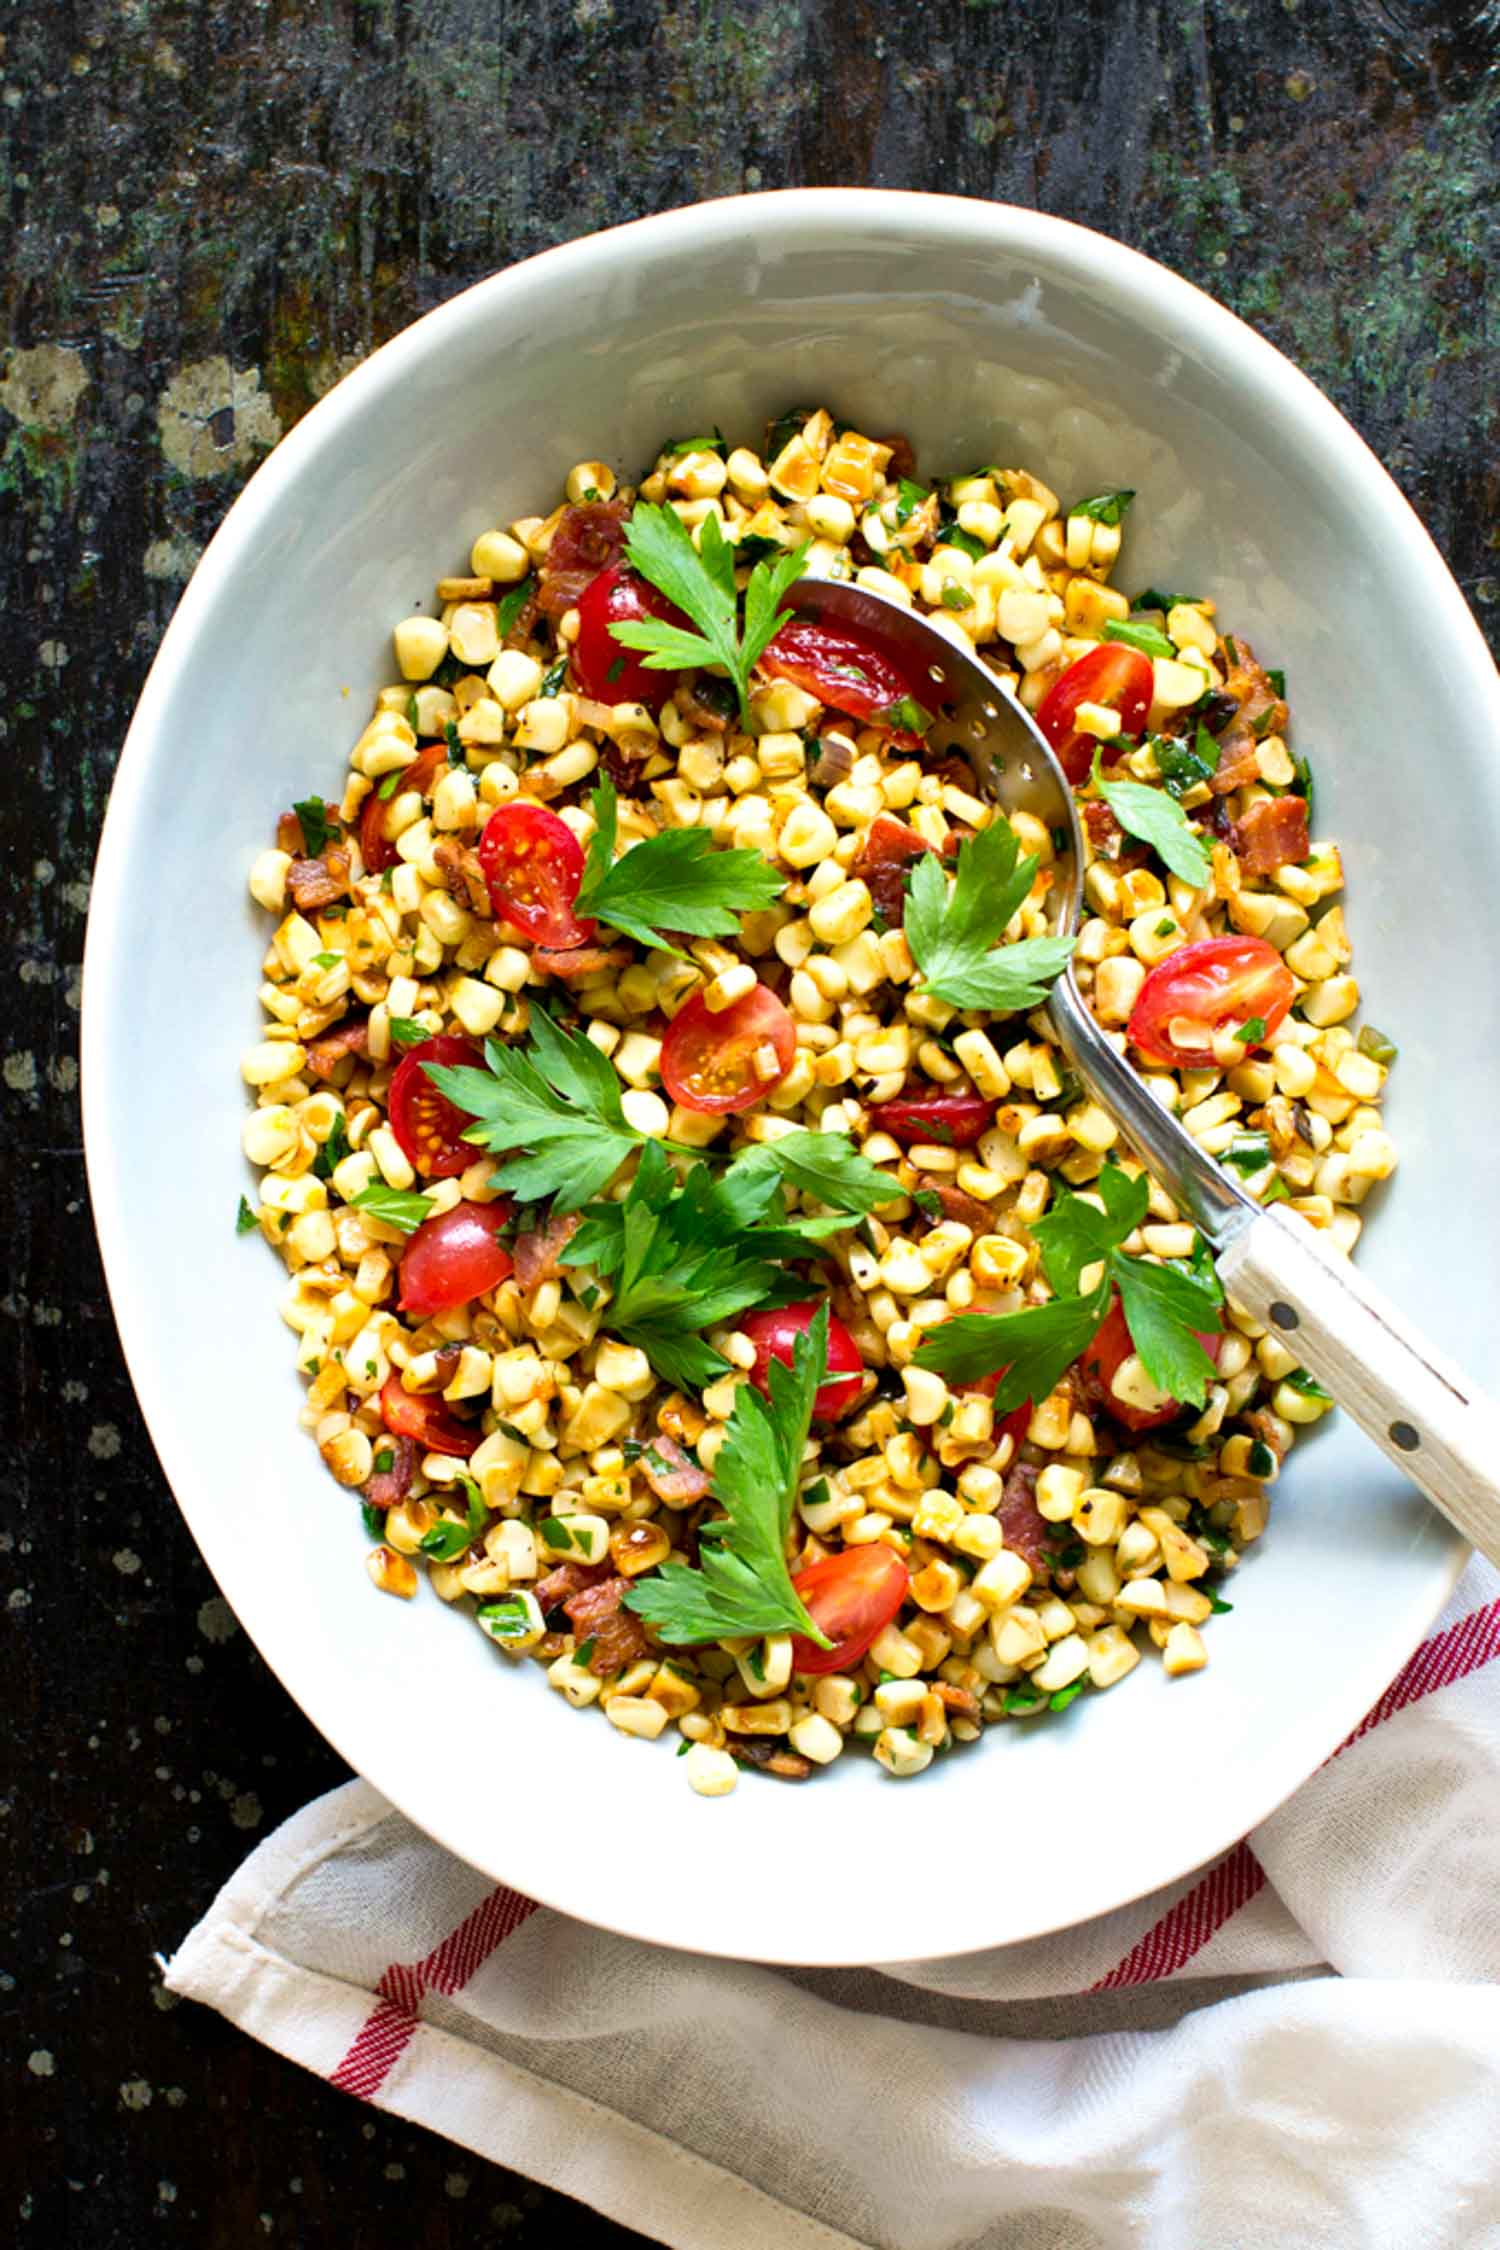 Warm corn salad with ramps in white bowl on black background.